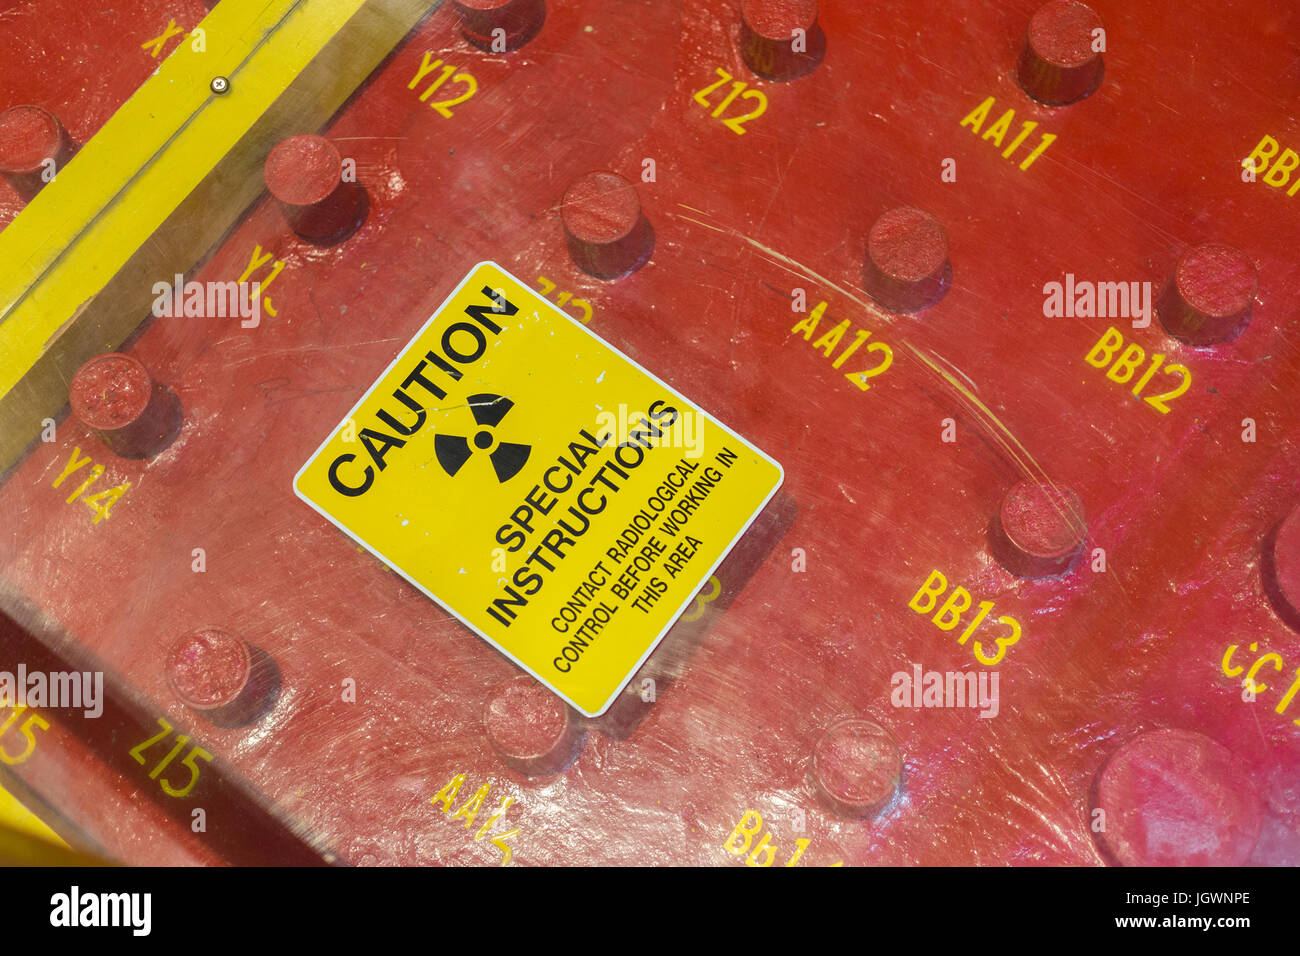 Detail of the rod farm in EBR-1 (Experimental Breeder Reactor 1), close to Arco, Idaho - Stock Image